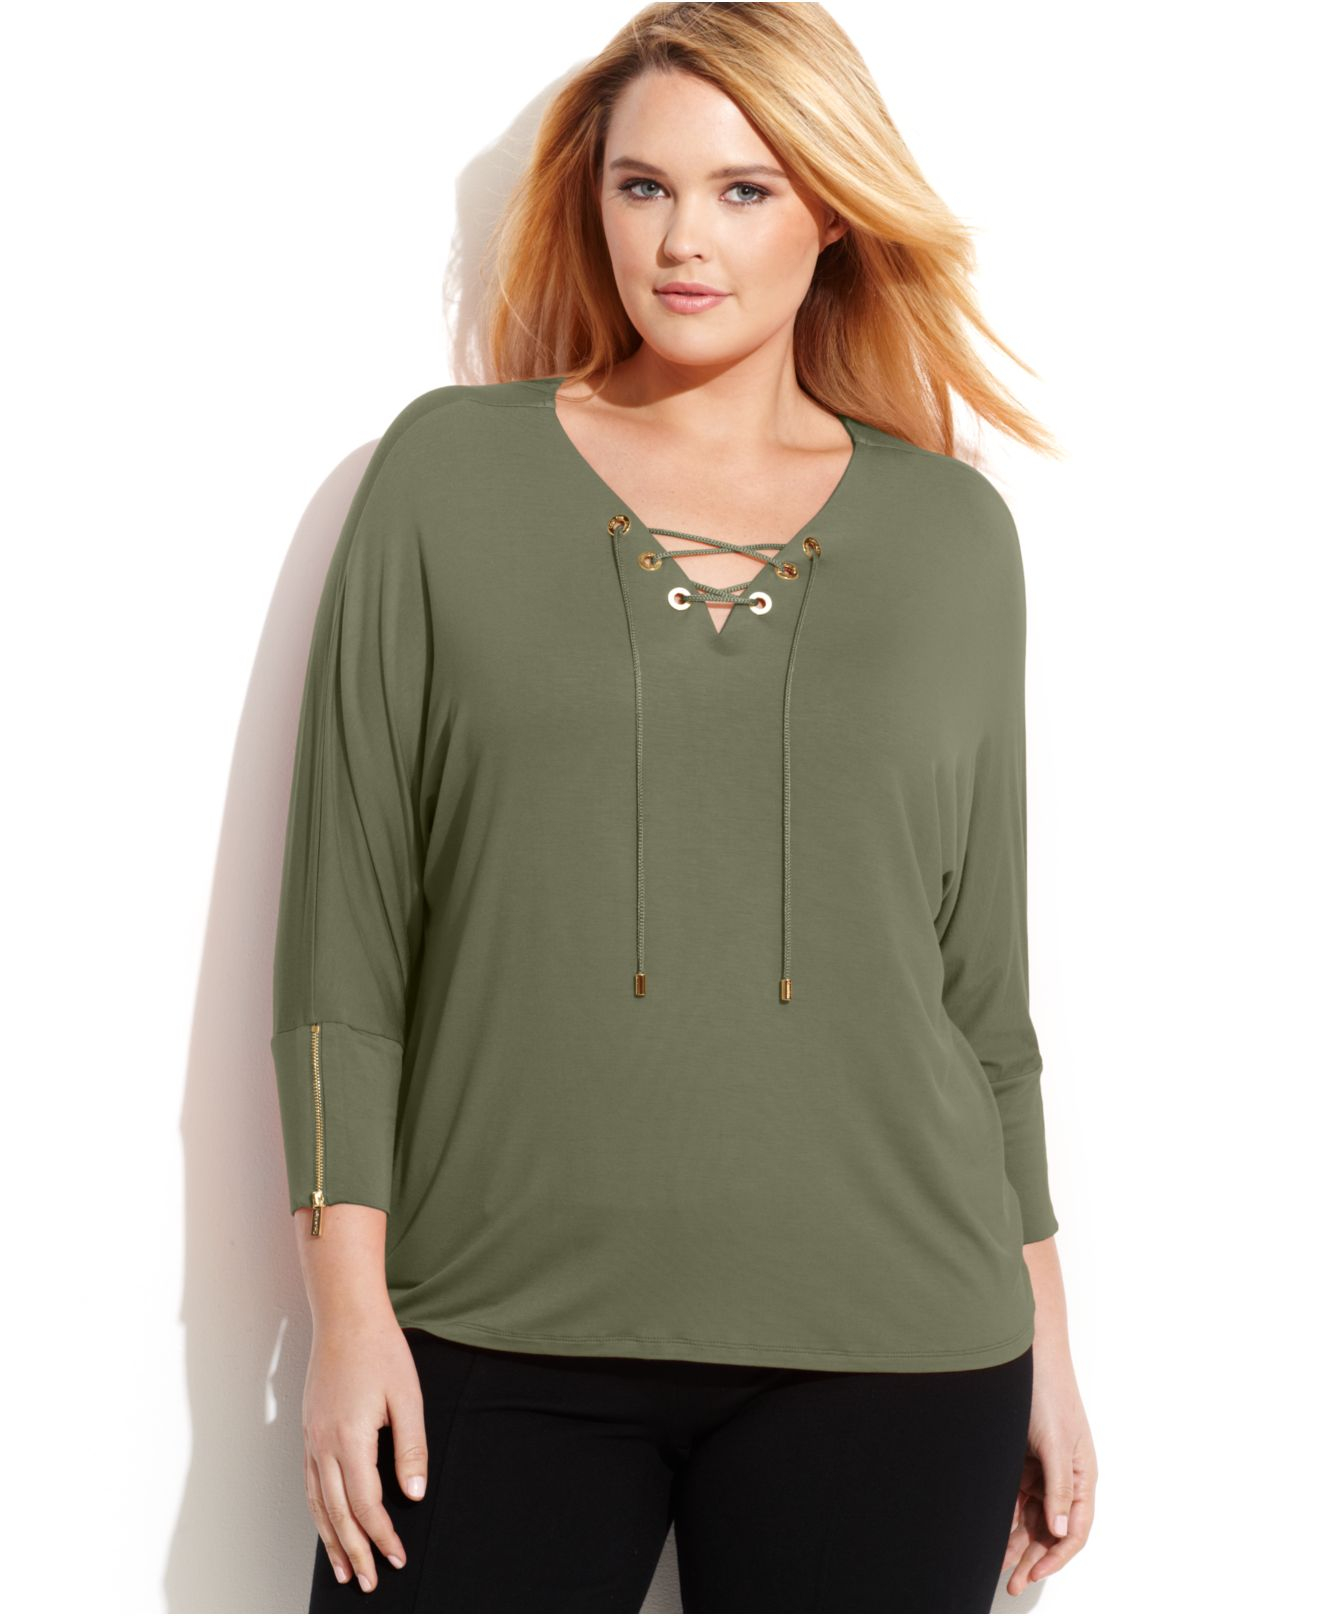 8d2855ab8fc642 Calvin Klein Plus Size Three-Quarter-Sleeve Lace-Up Top in Green - Lyst